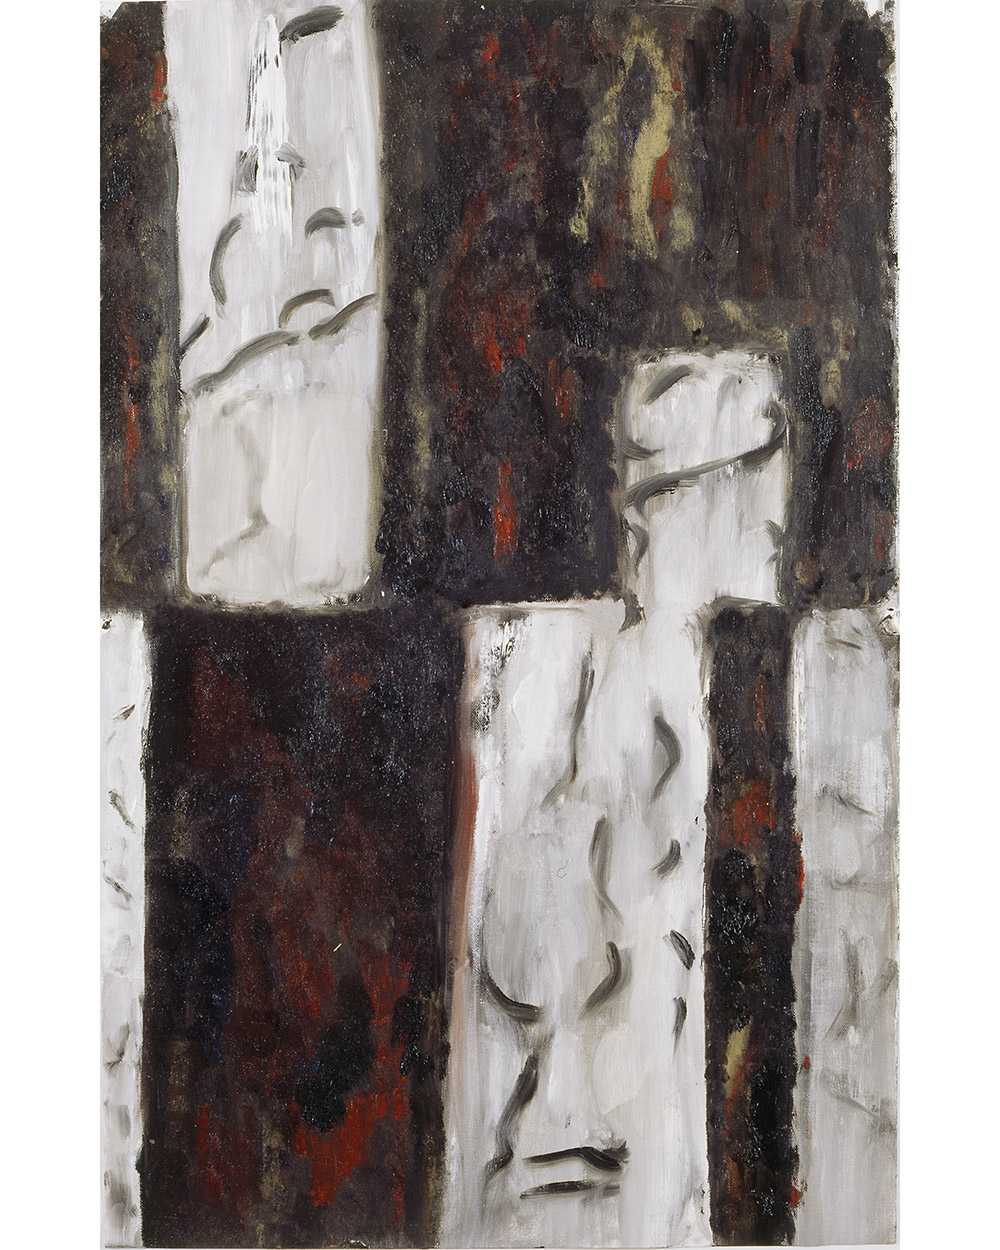 13.-Ono-Through-the-Slits-in-the-Wall-2006.-Oil-on-canvas-paper-mounted-on-wood-81.3-x-50.8-cm-x.jpg